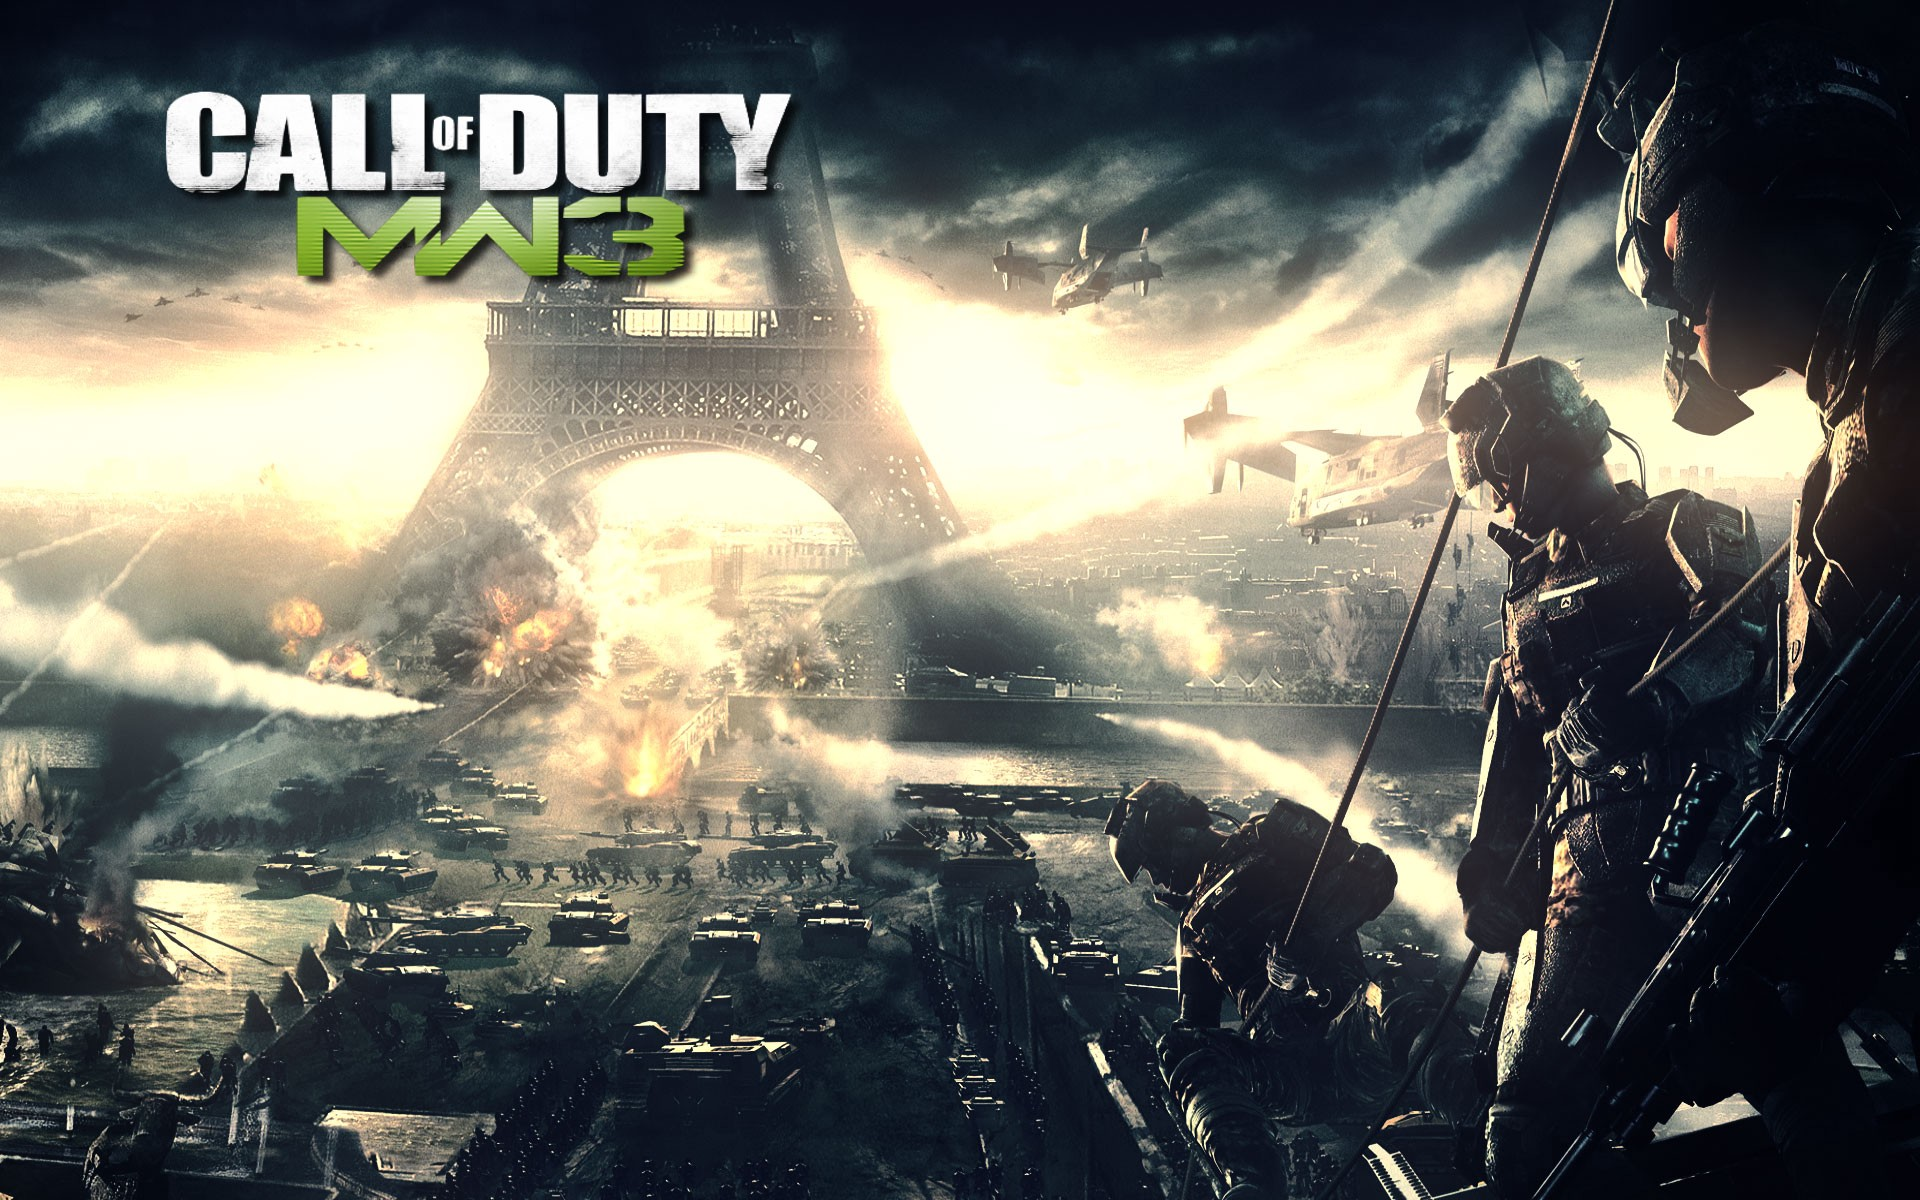 Join The War With Call Of Duty Modern Warfare 3 By Radney